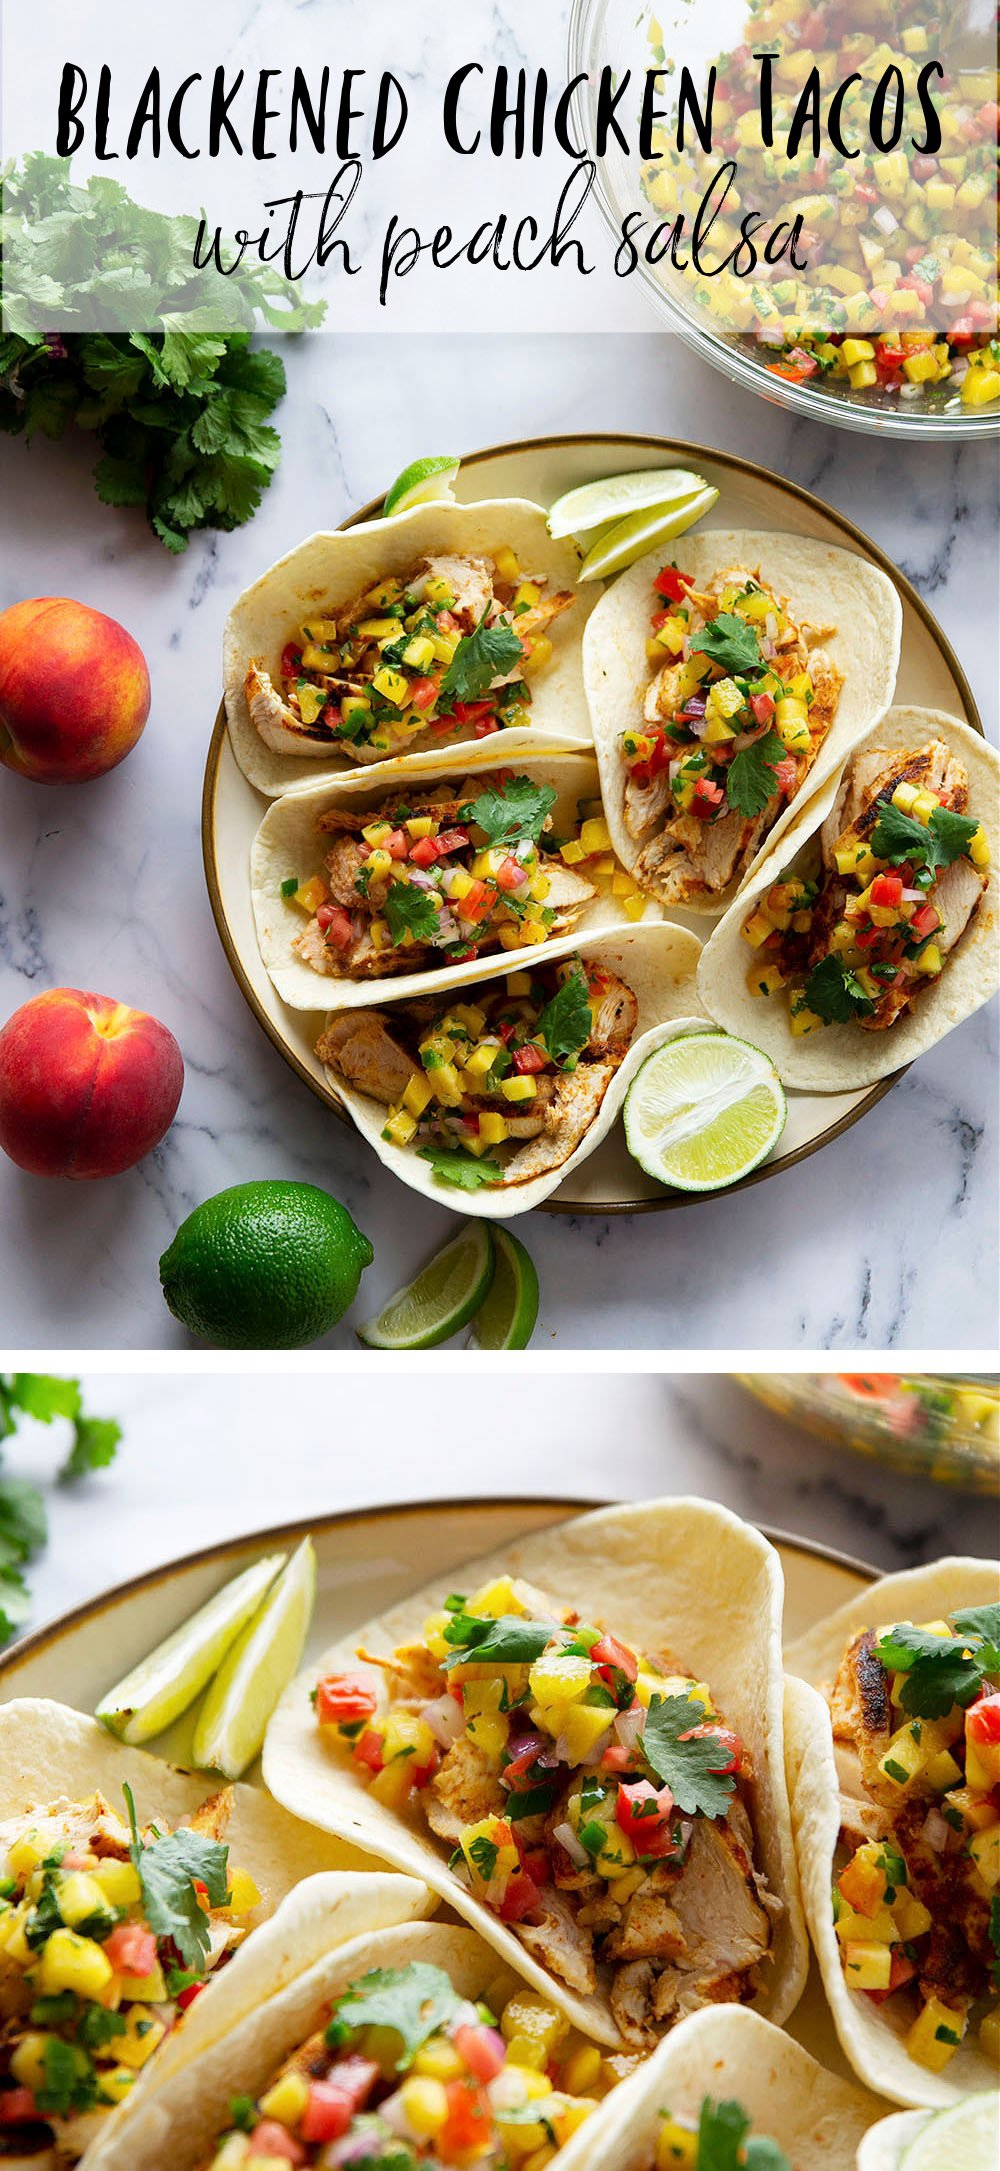 Blackened chicken tacos feature a homemade blackened seasoning mix coating juicy chicken and a fresh spicy peach salsa on top.